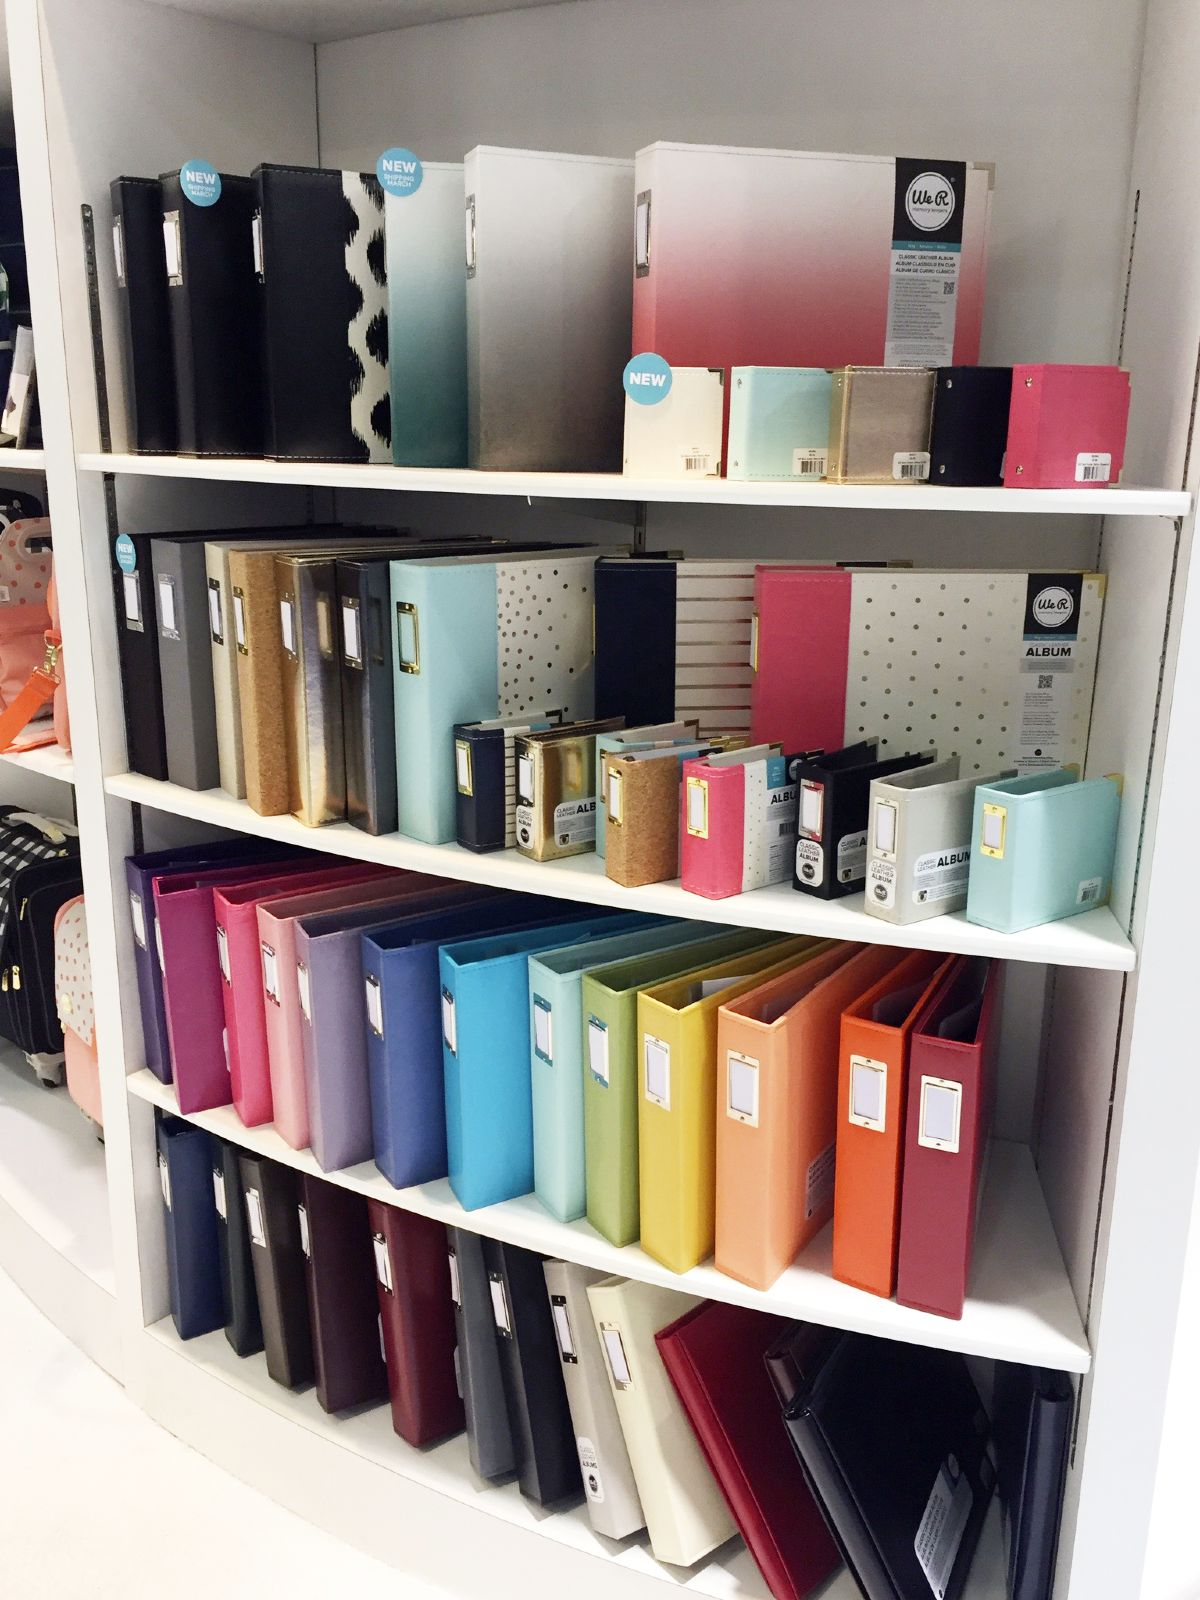 Scrapbook & Photo Albums On Shelf